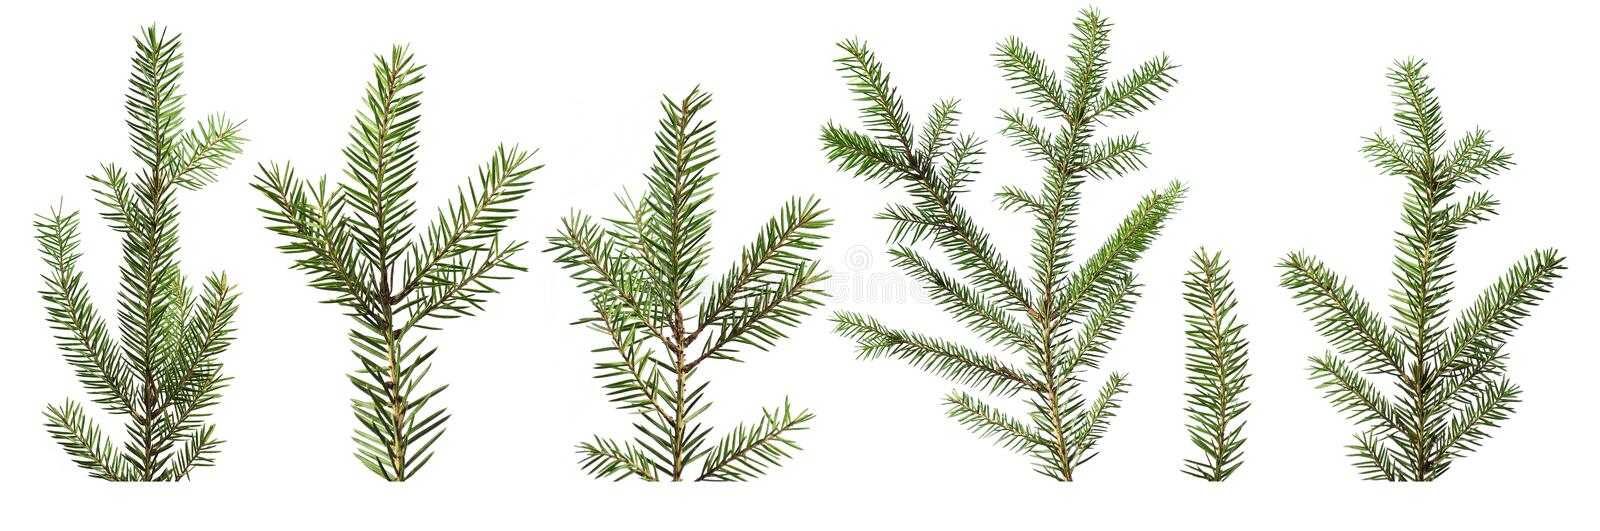 Download Fir tree branches stock photo. Image of decorative, isolated - 22094756